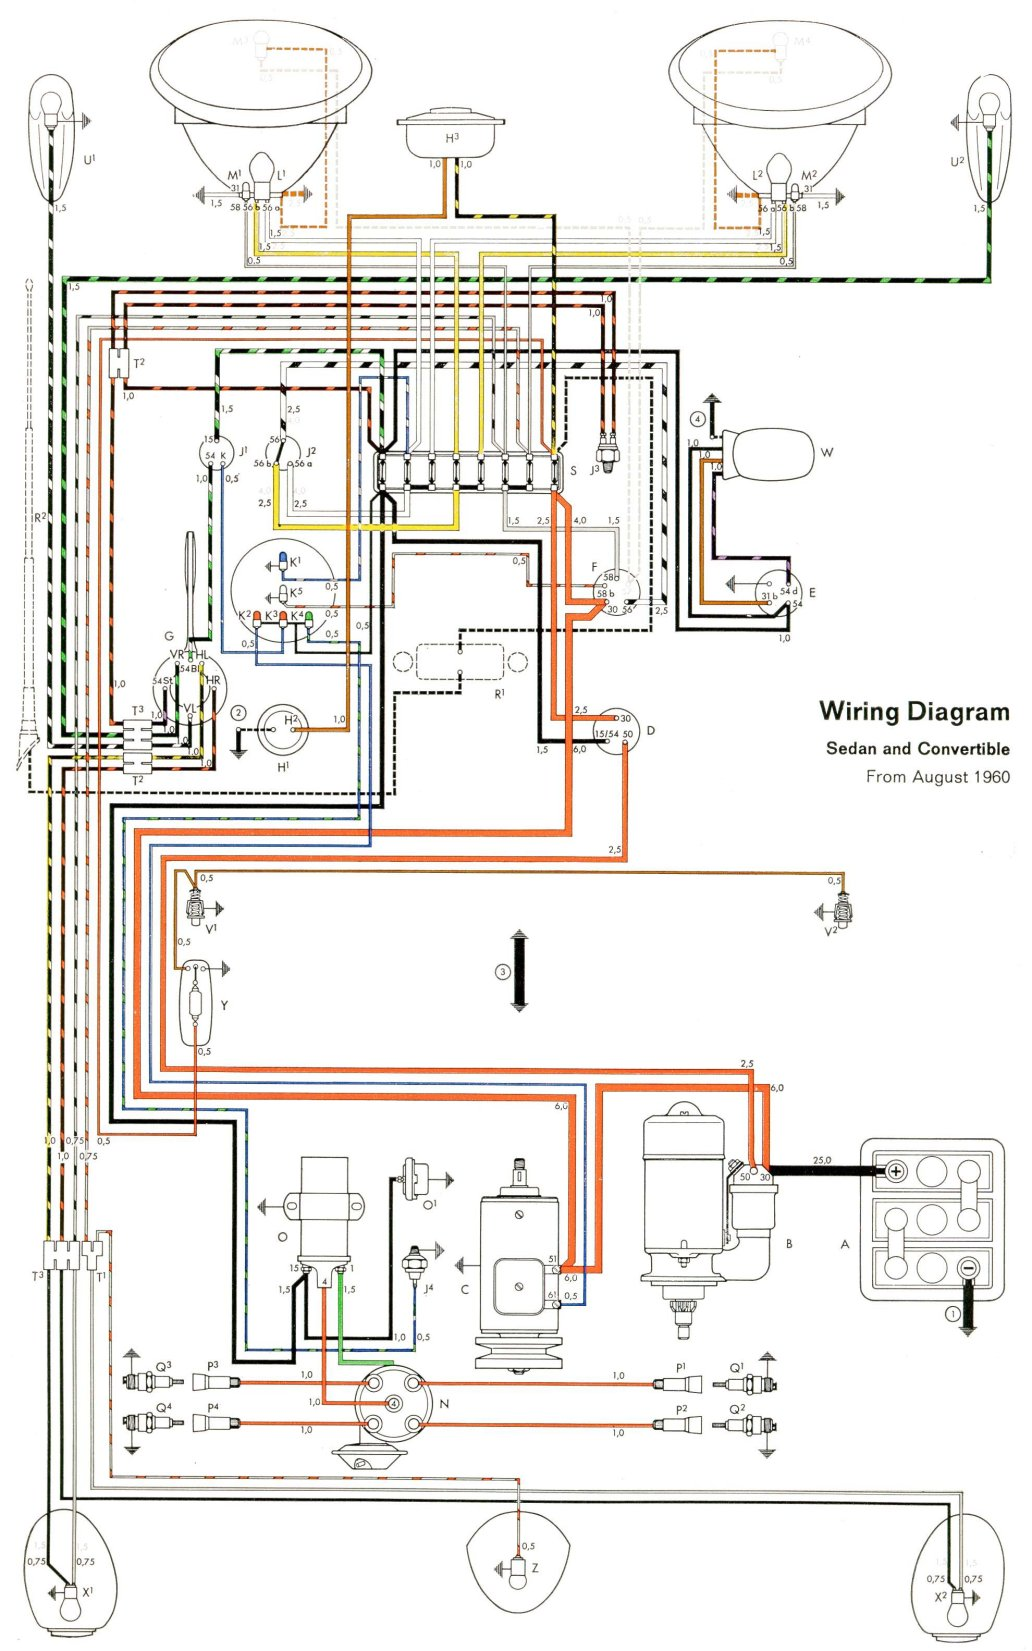 bug_61 european wiring diagram hyundai sonata wiring diagram \u2022 free vw wiring diagram symbols at bakdesigns.co